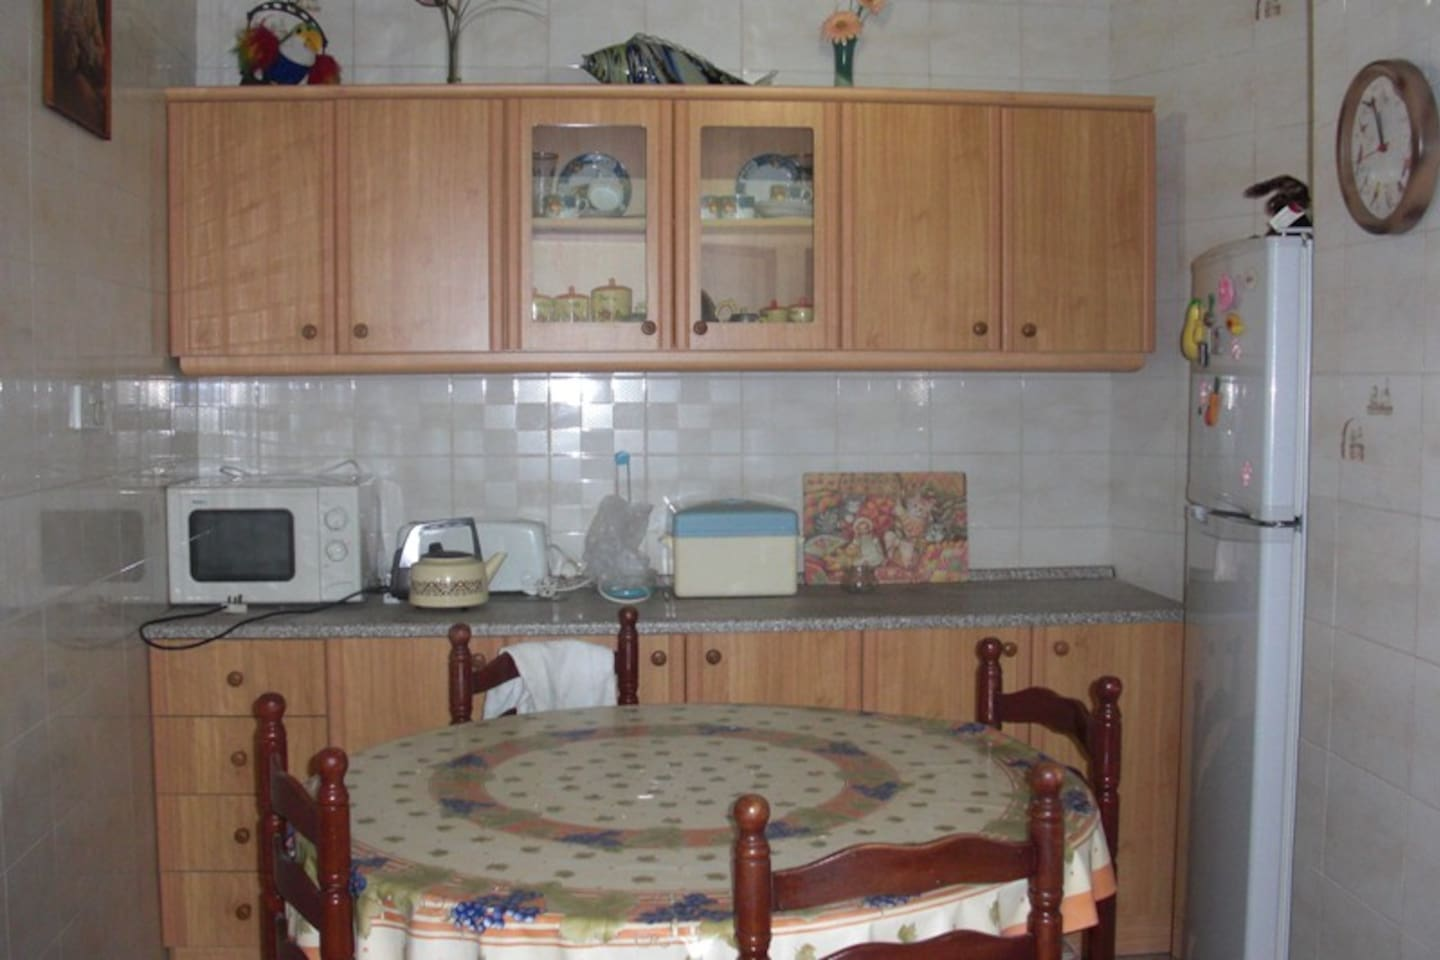 Kitchen with a spare toilet